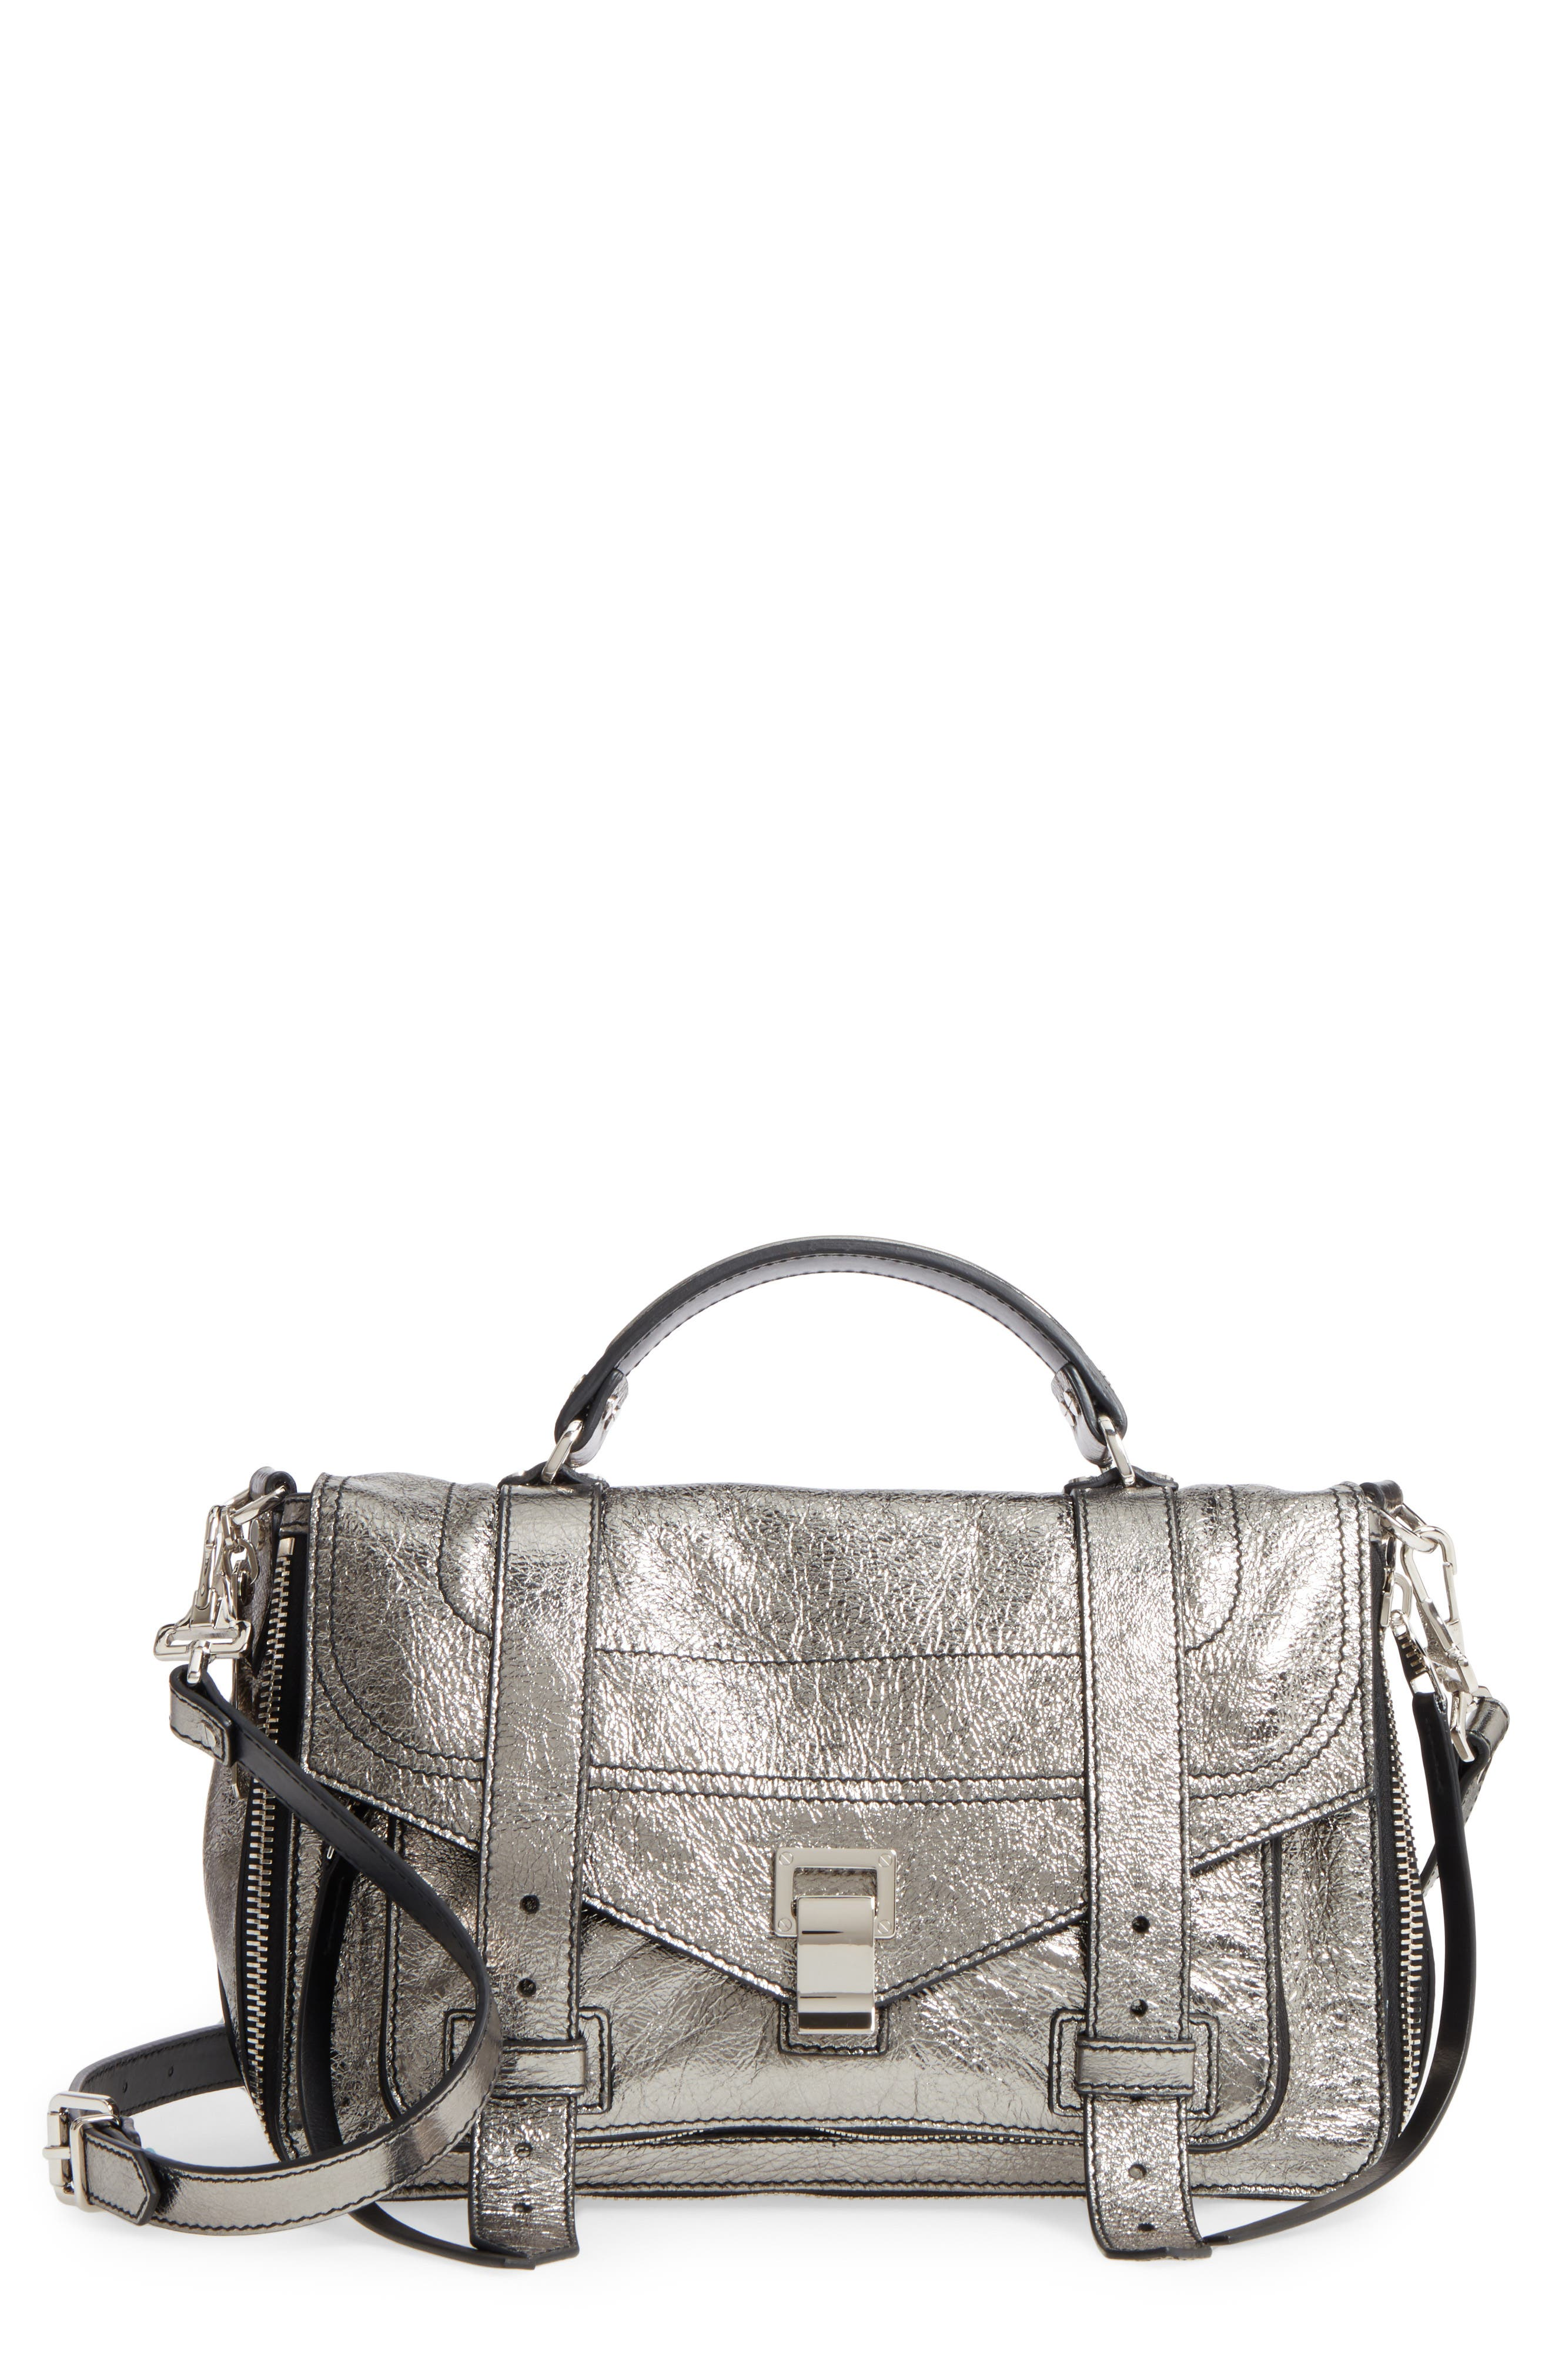 Medium PS1 Metallic Calfskin Satchel,                         Main,                         color,